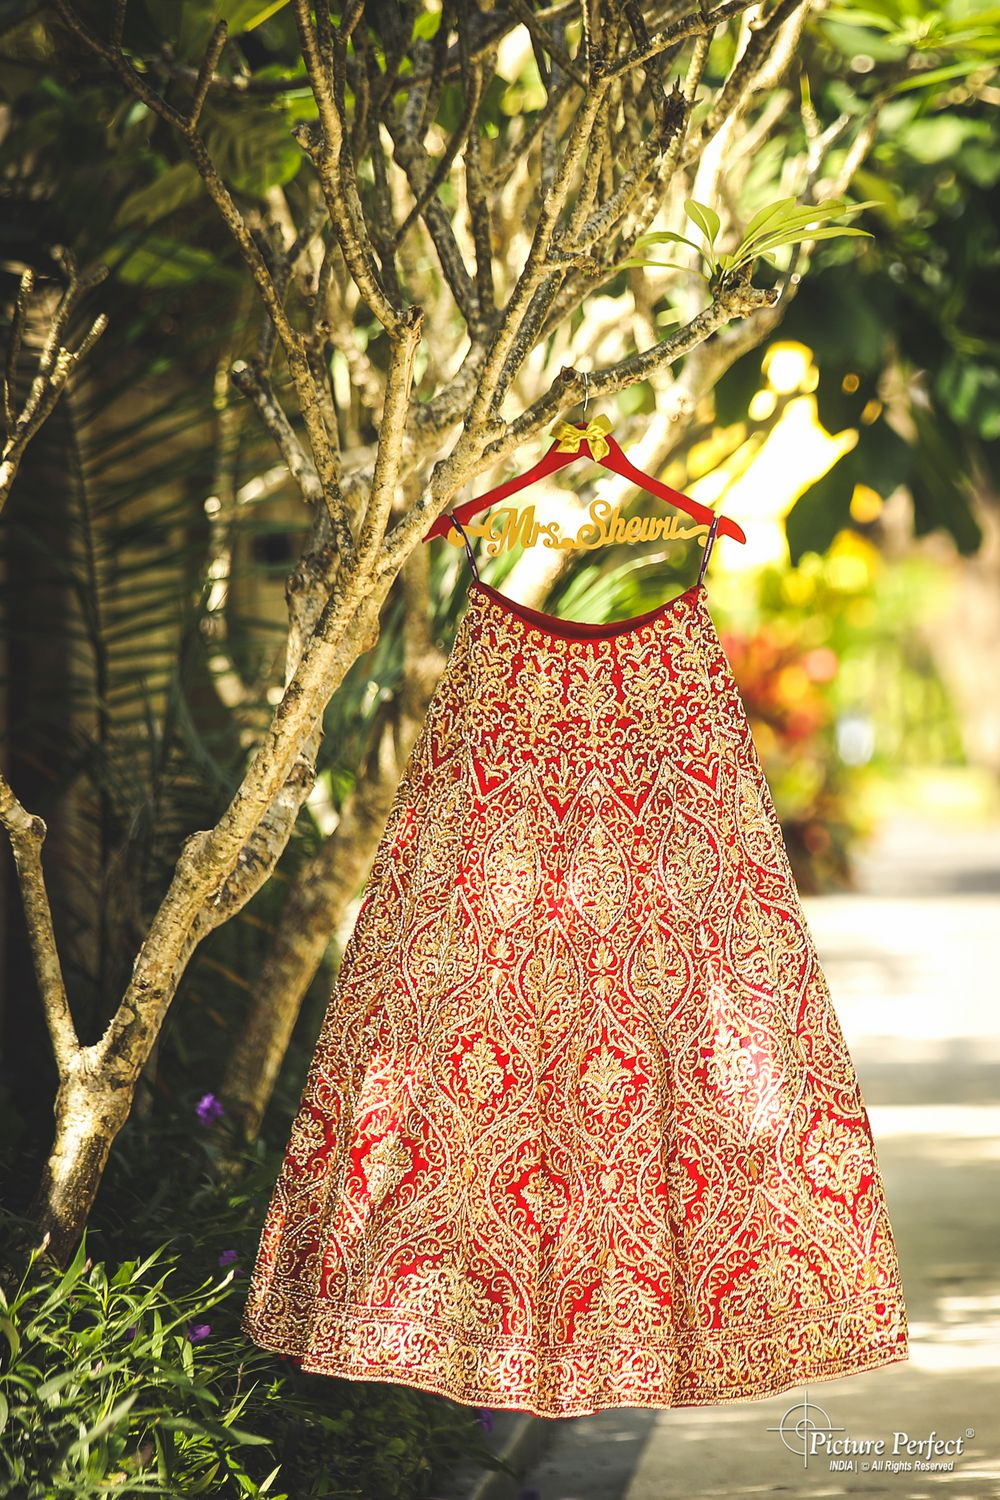 Photo From Varun + Jyotsna's wedding in Bali - By Picture Perfect India